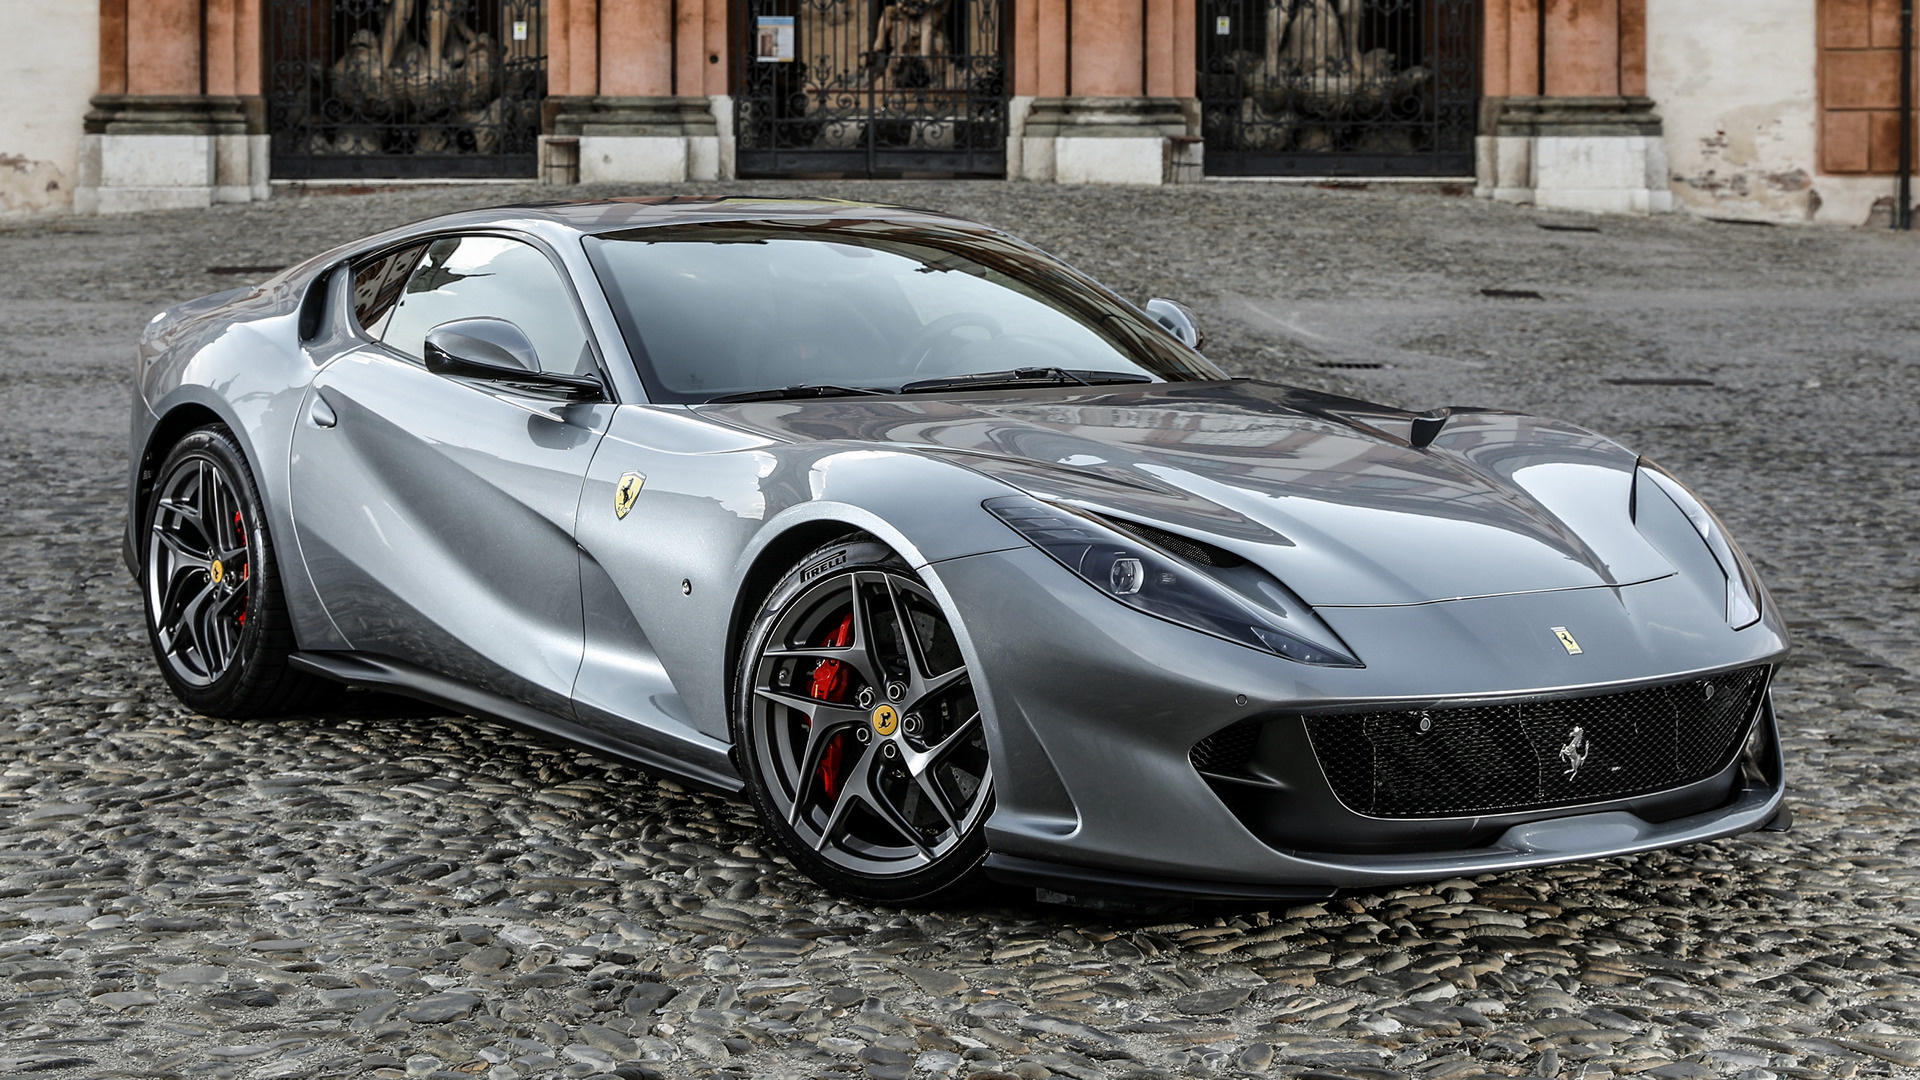 2017 Ferrari 812 Superfast - Wallpapers and HD Images ...